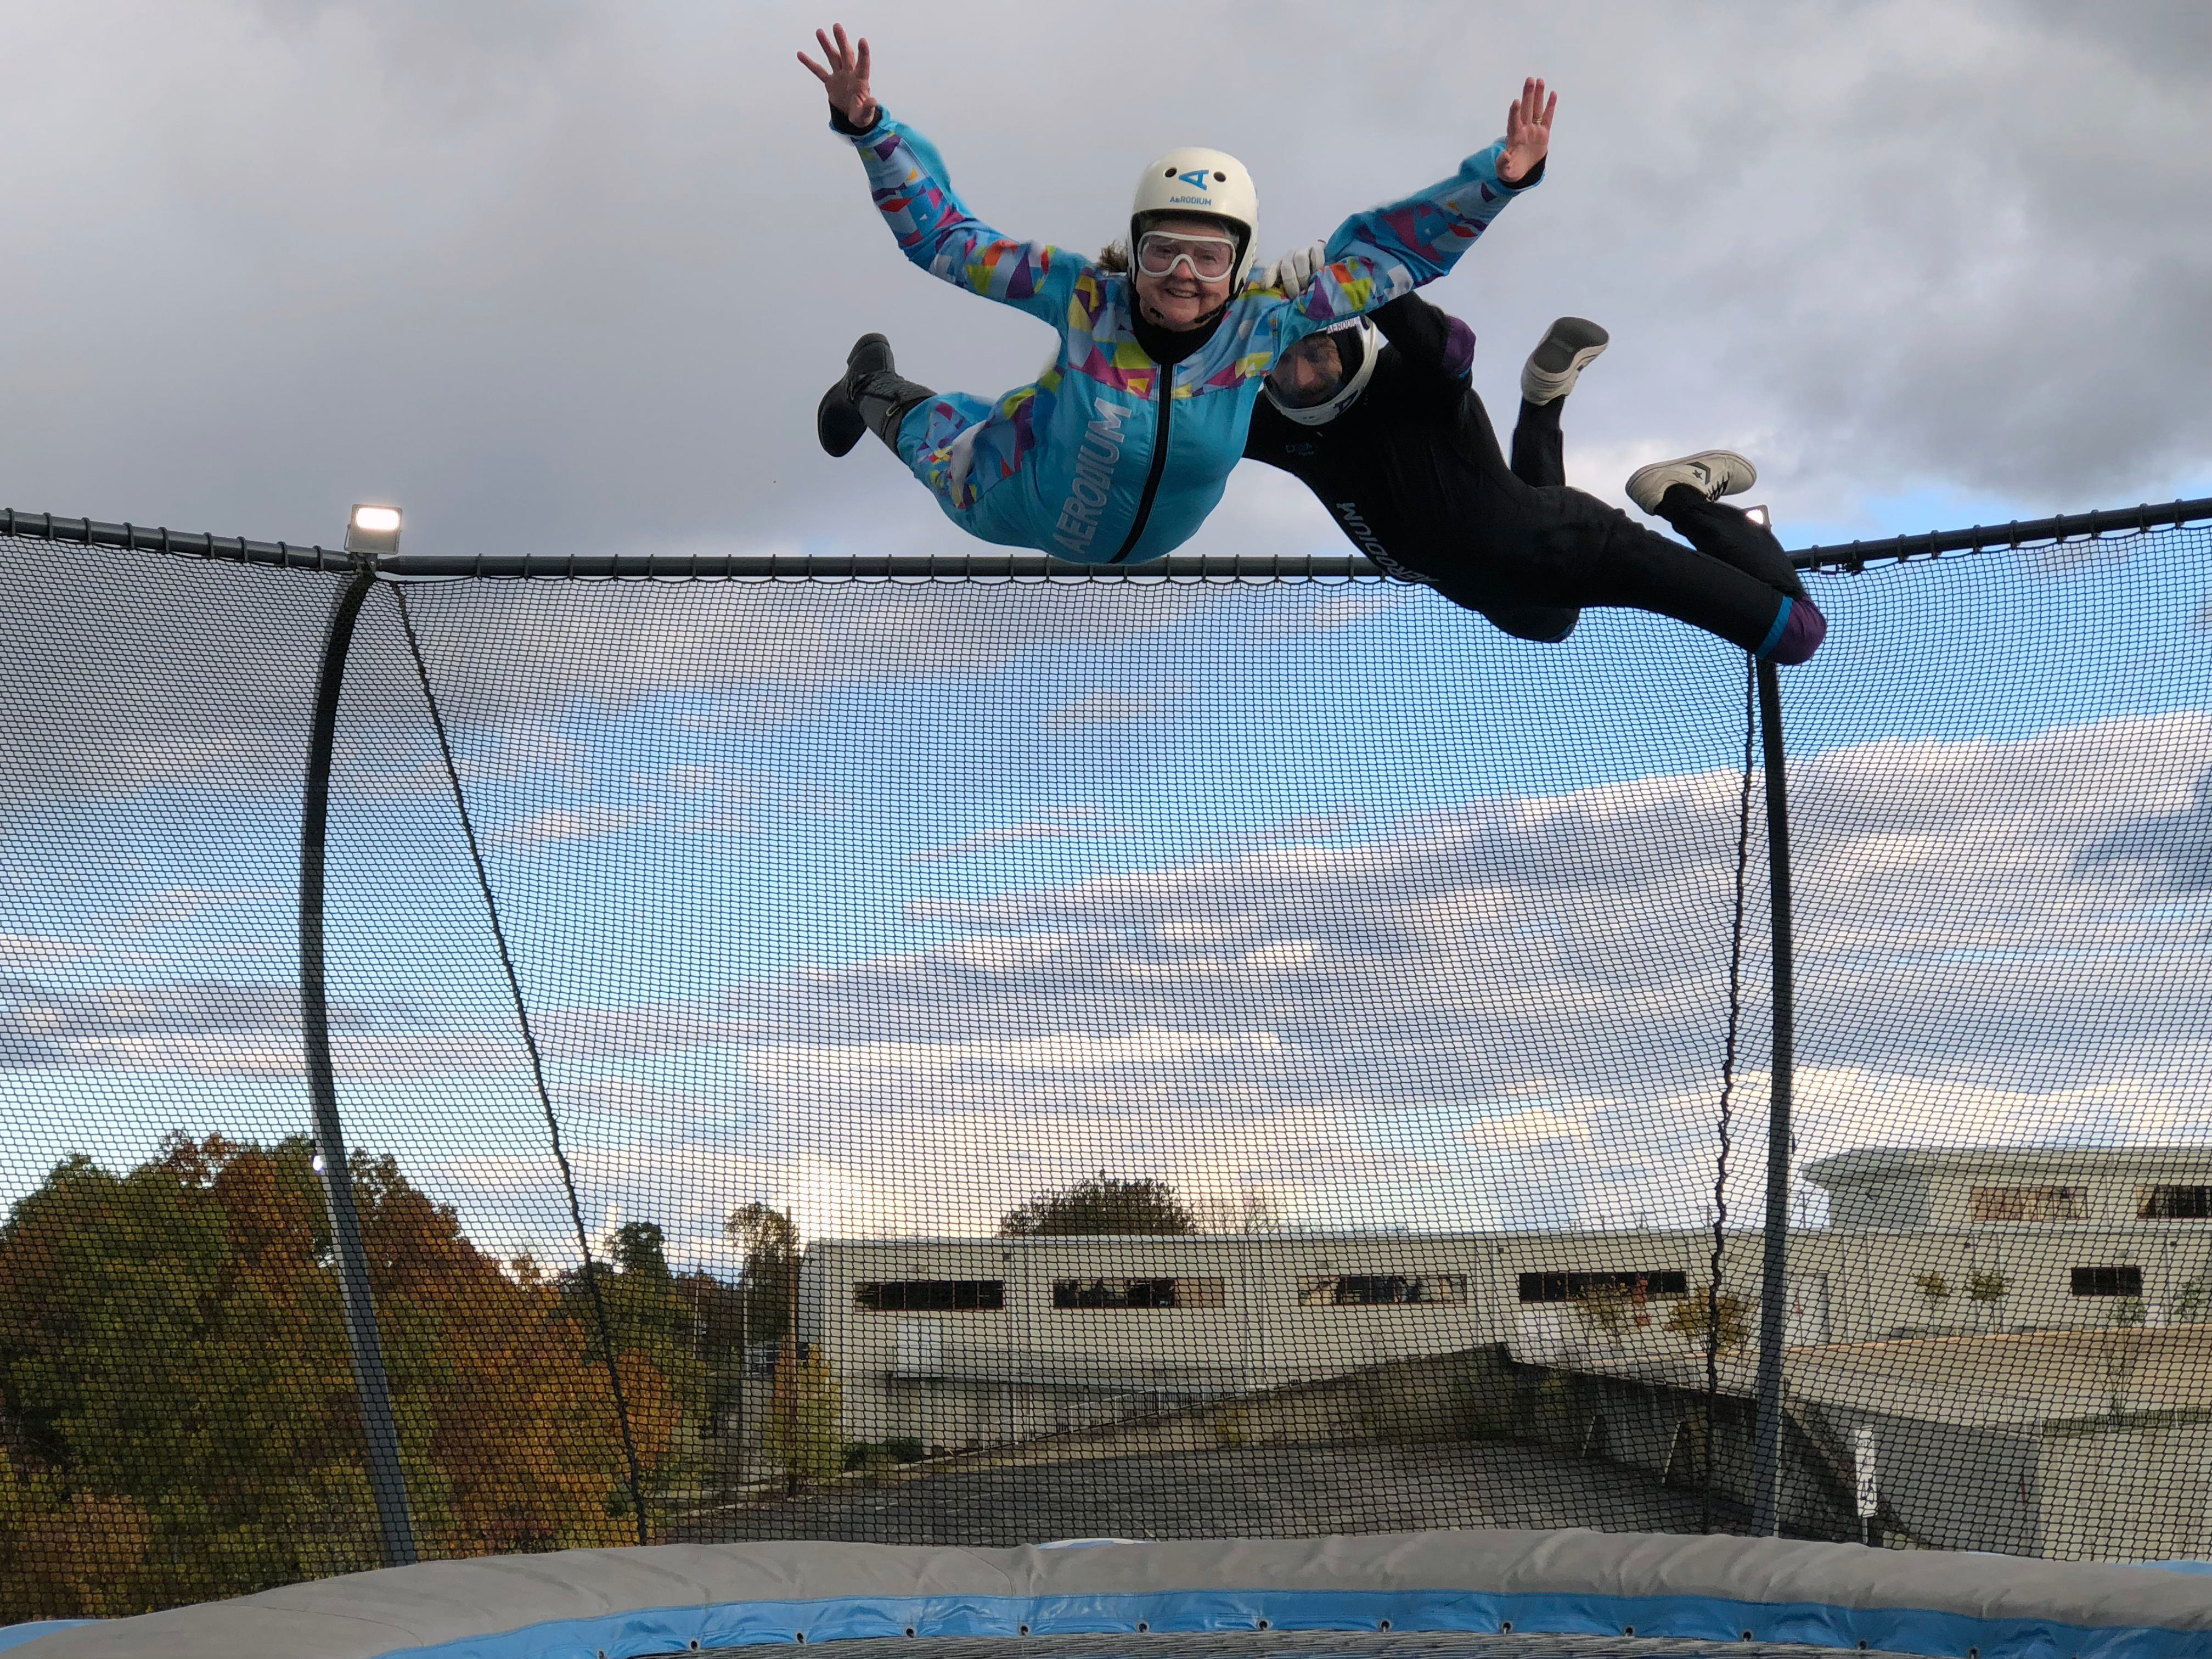 There are a number of wind tunnel attractions, but the Aerodium is the first in the country to be located outdoors.